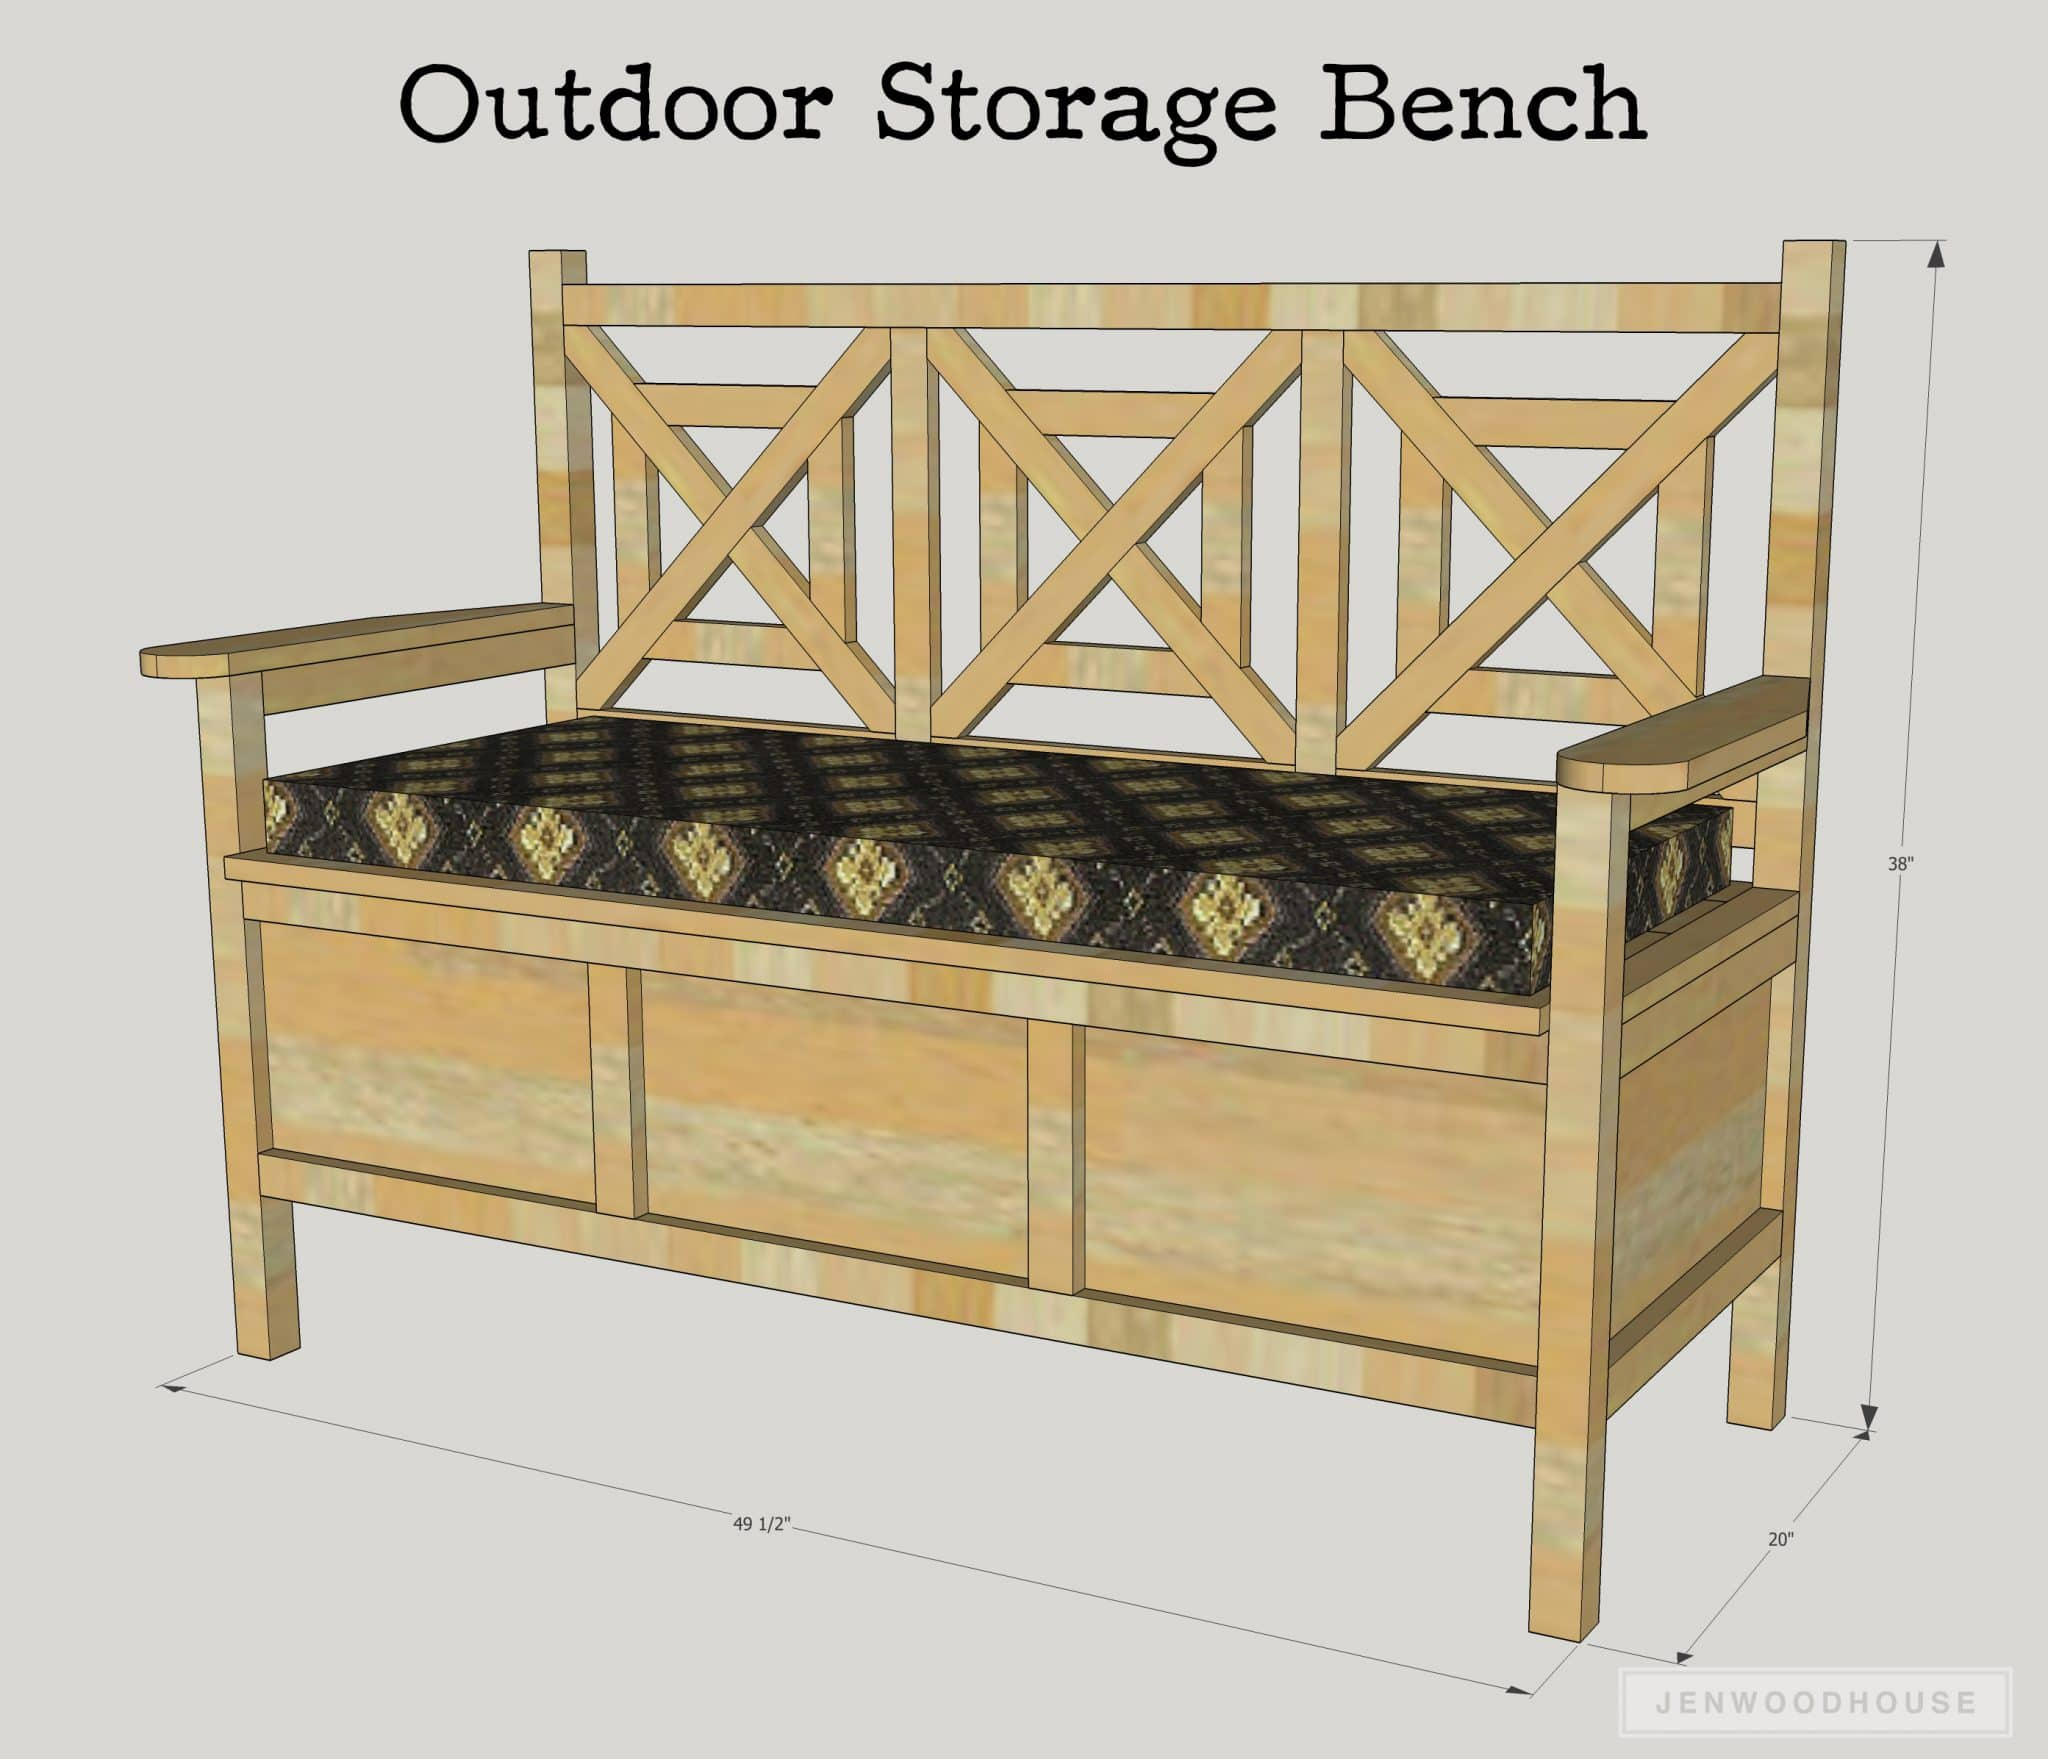 Storage Bench Ideas Part - 32: How To Build A DIY Outdoor Storage Bench With Free Plans By Jen Woodhouse